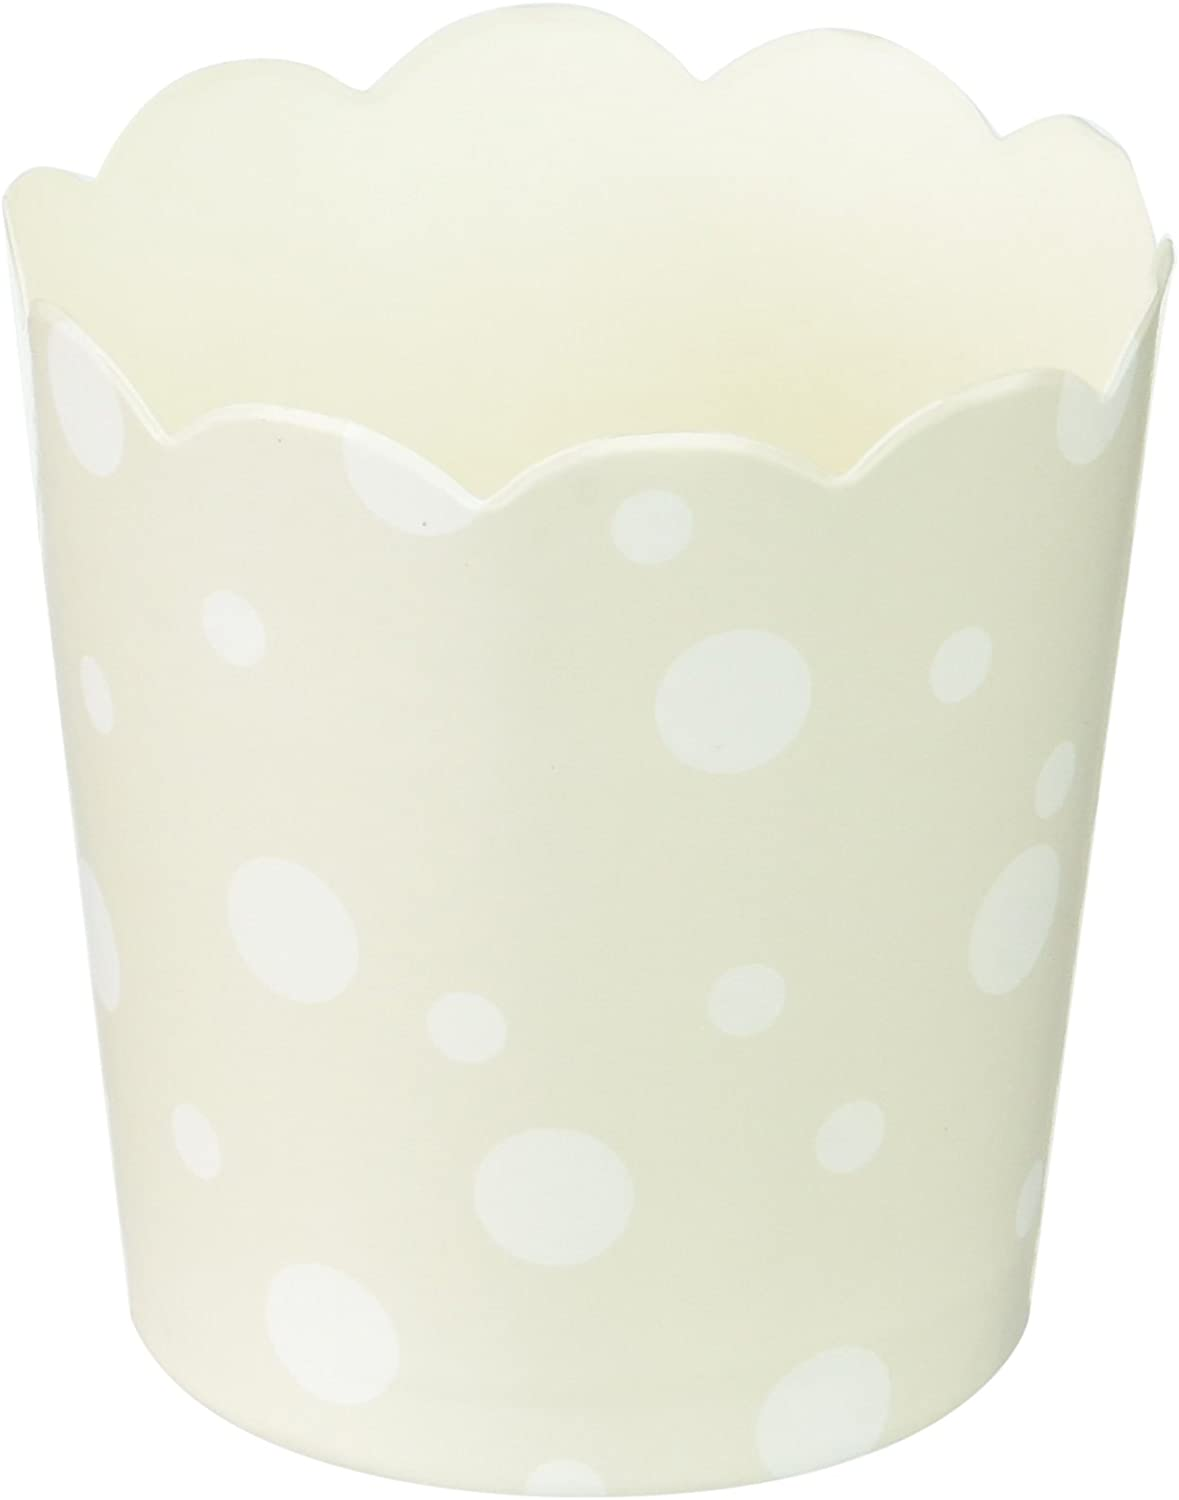 Black and White Polka Dots Mini Baking Cups 100 ct from Wilton 0375